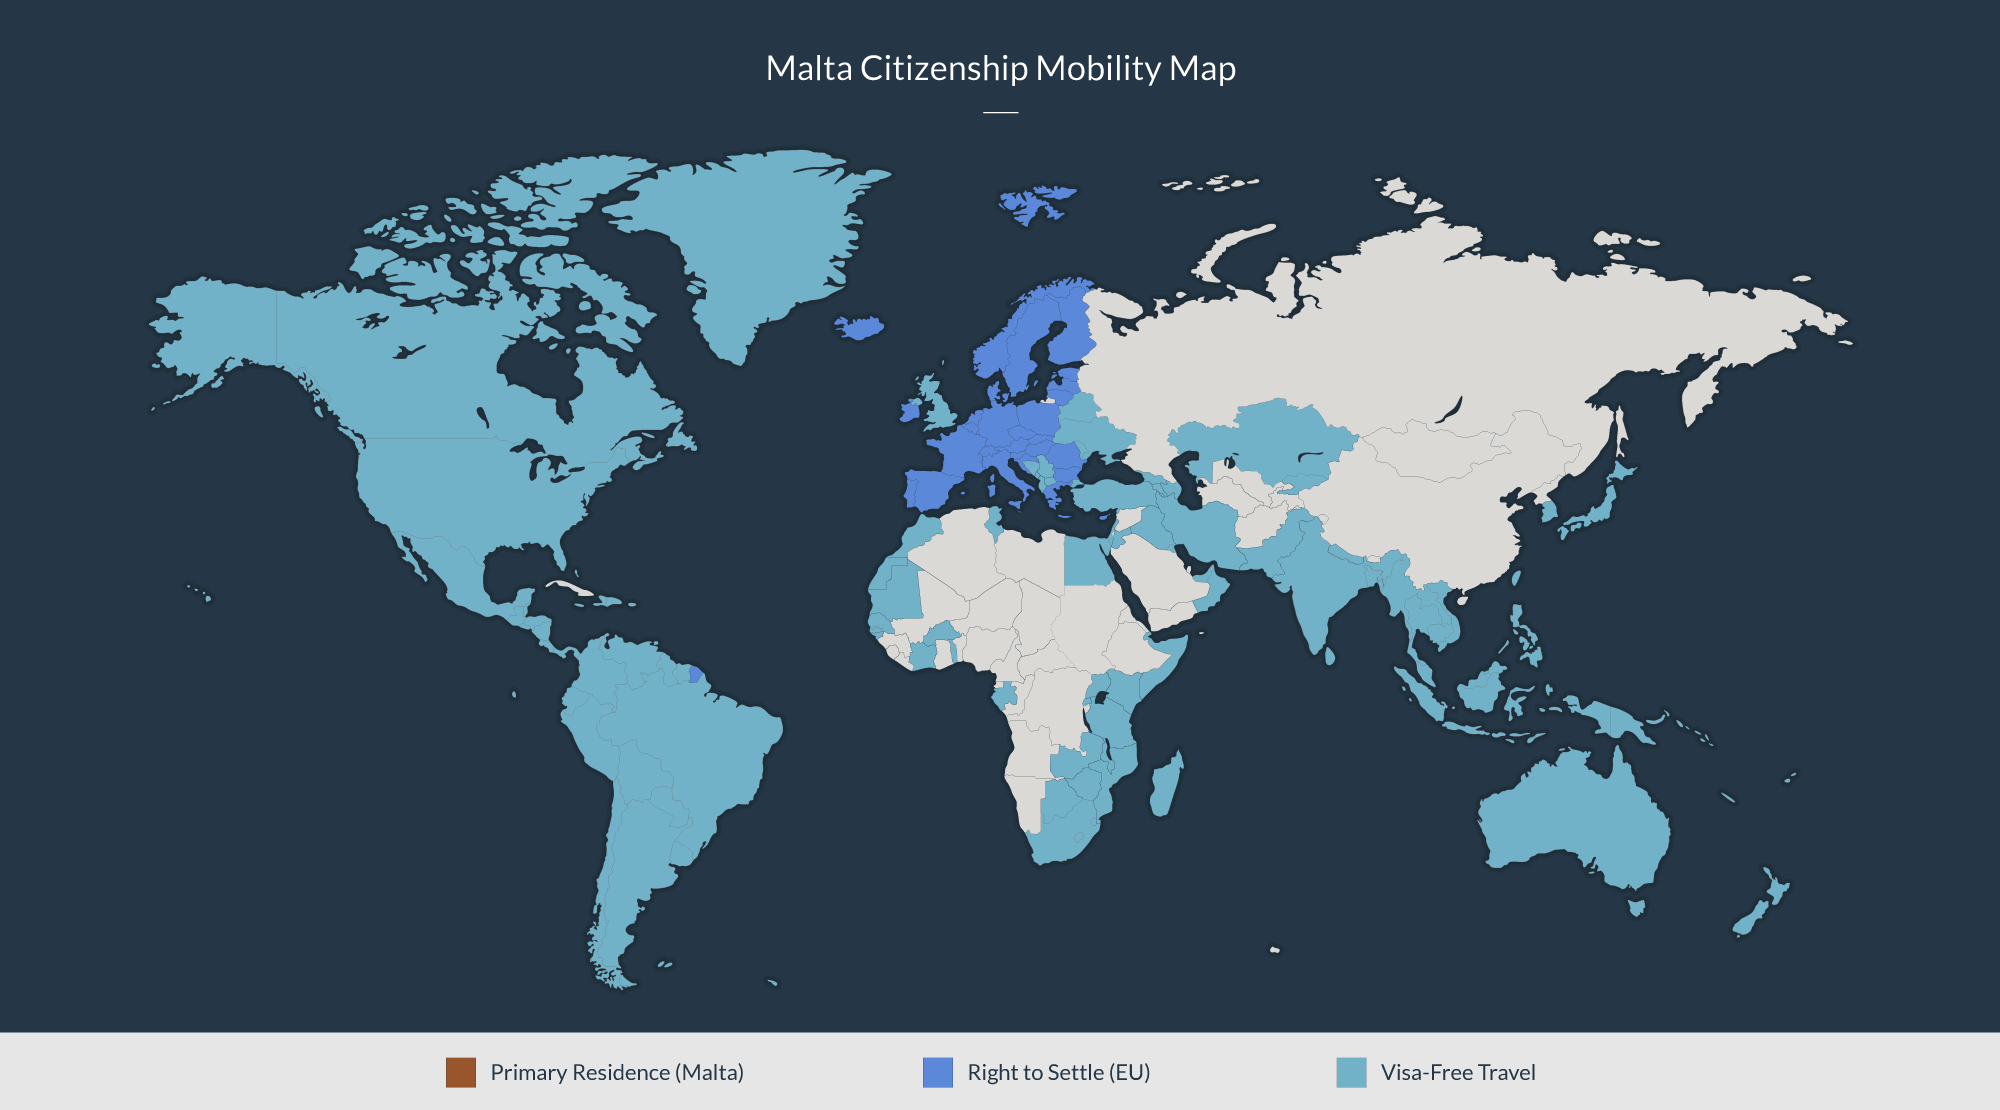 Malta citizenship mobility map: Primary residence in Malta, Right to settle in the European Union, and Visa-free travel to many other countries.